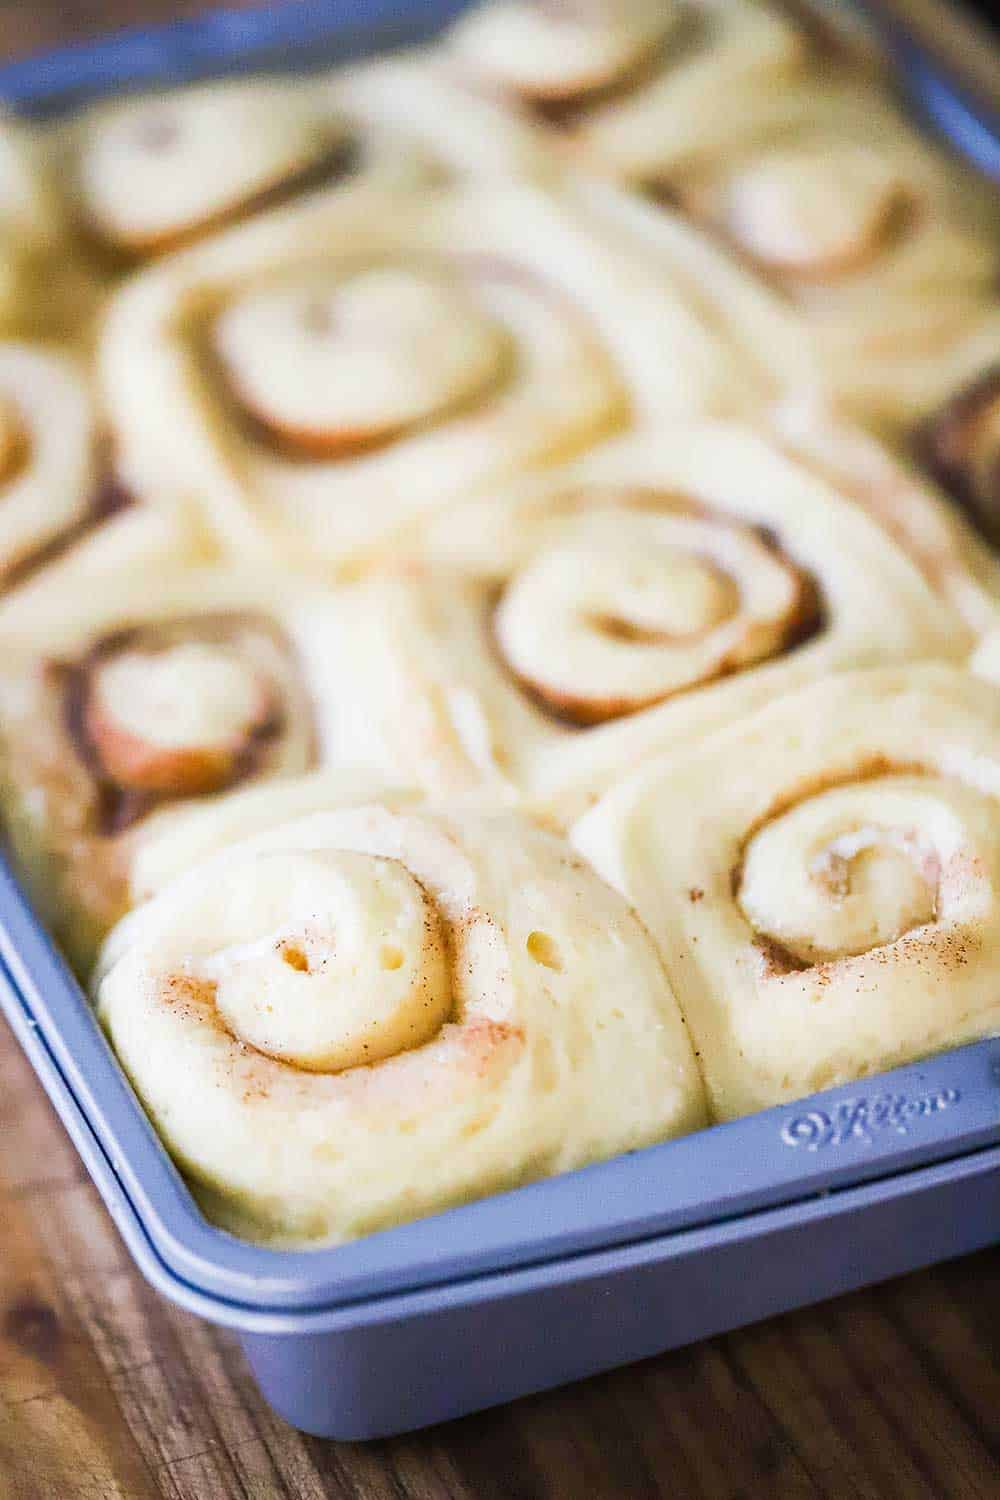 A metal baking pan filled with uncooked cinnamon rolls that have risen from a second round of proofing.